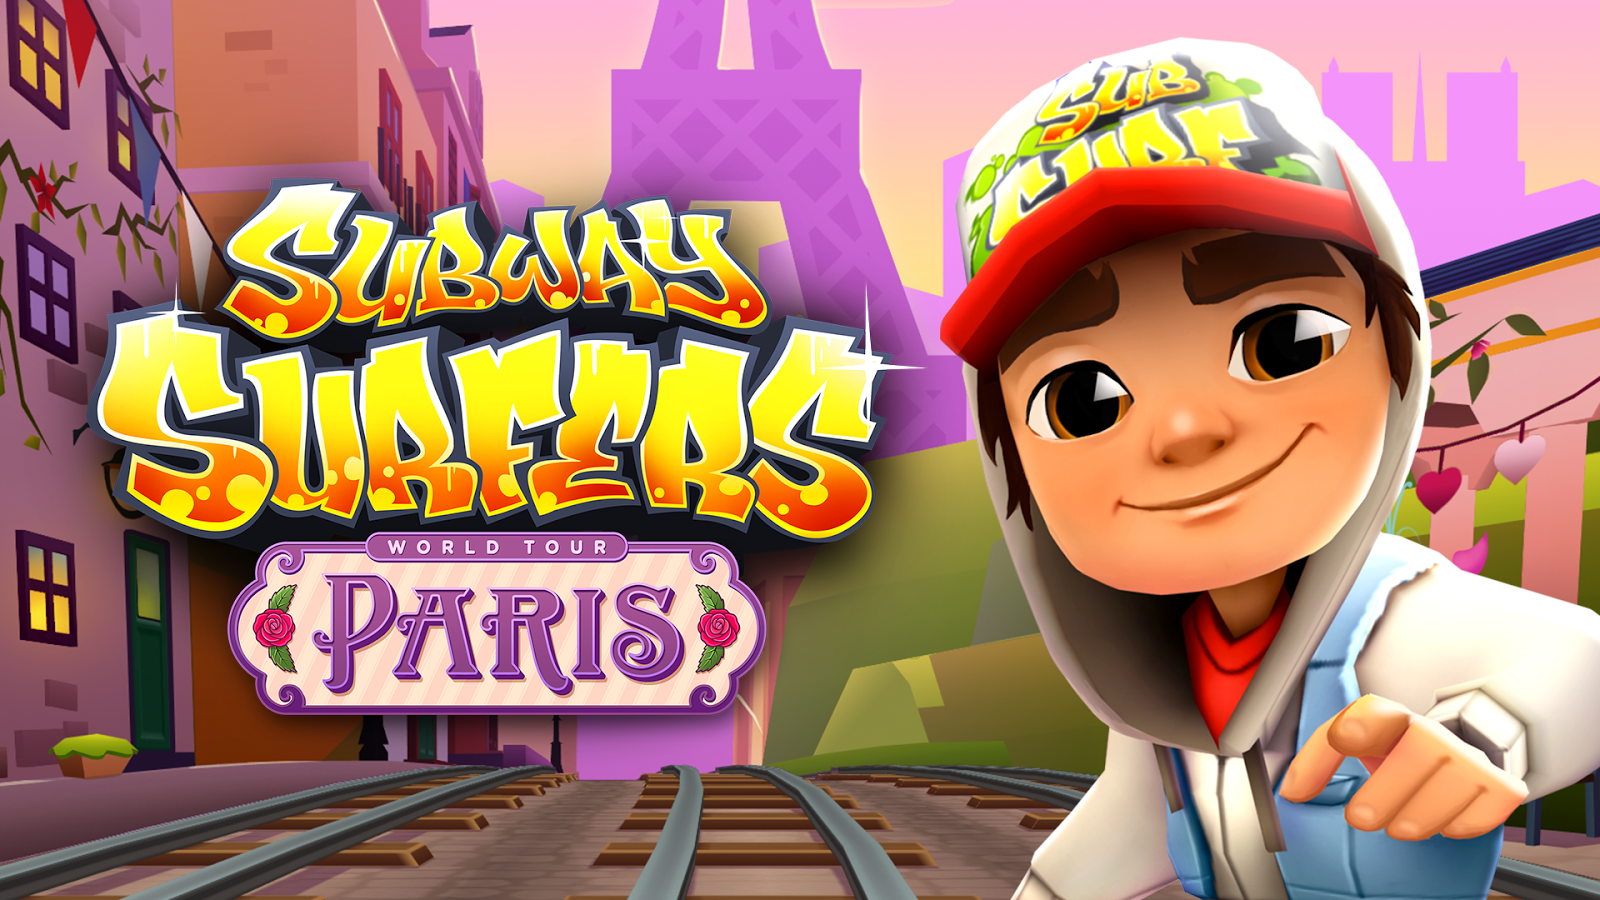 Subway Surfers Hack - Unlimited Keys, Coins, Everything Unlocked